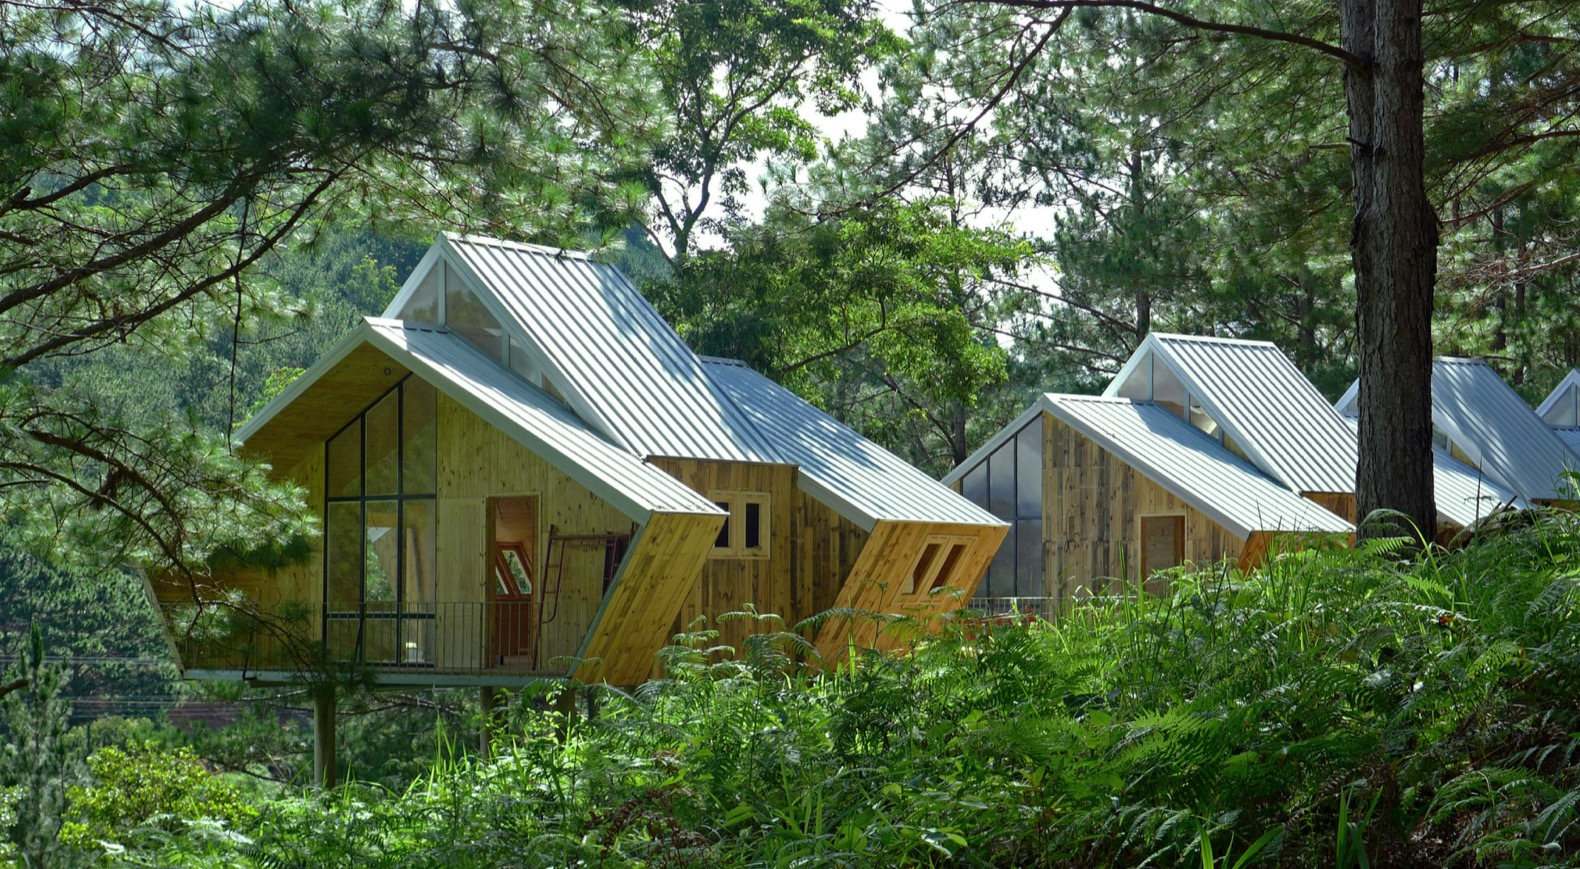 Geometric pine cabins house nature-minded workspaces in Vietnam